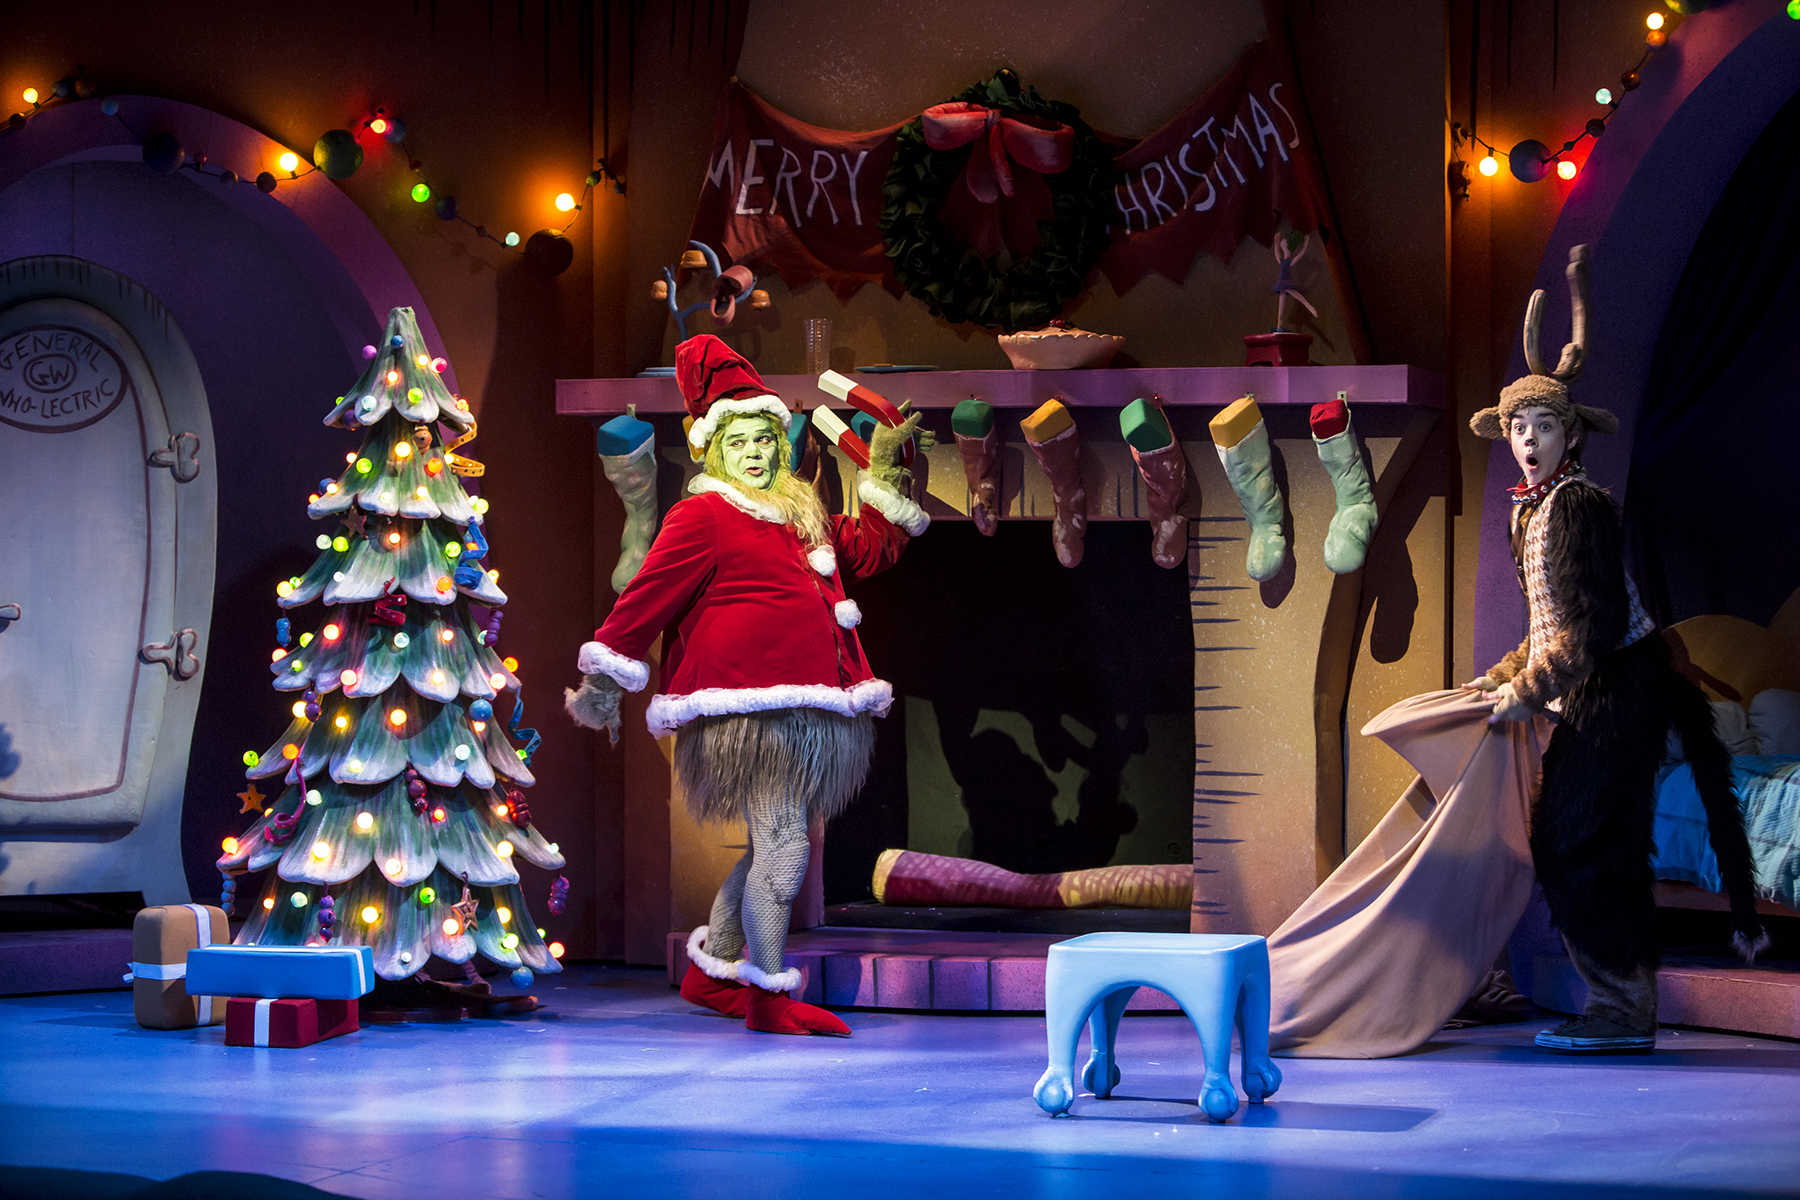 reed sigmund and brandon brooks photo by dan norman - How The Grinch Stole Christmas 2014